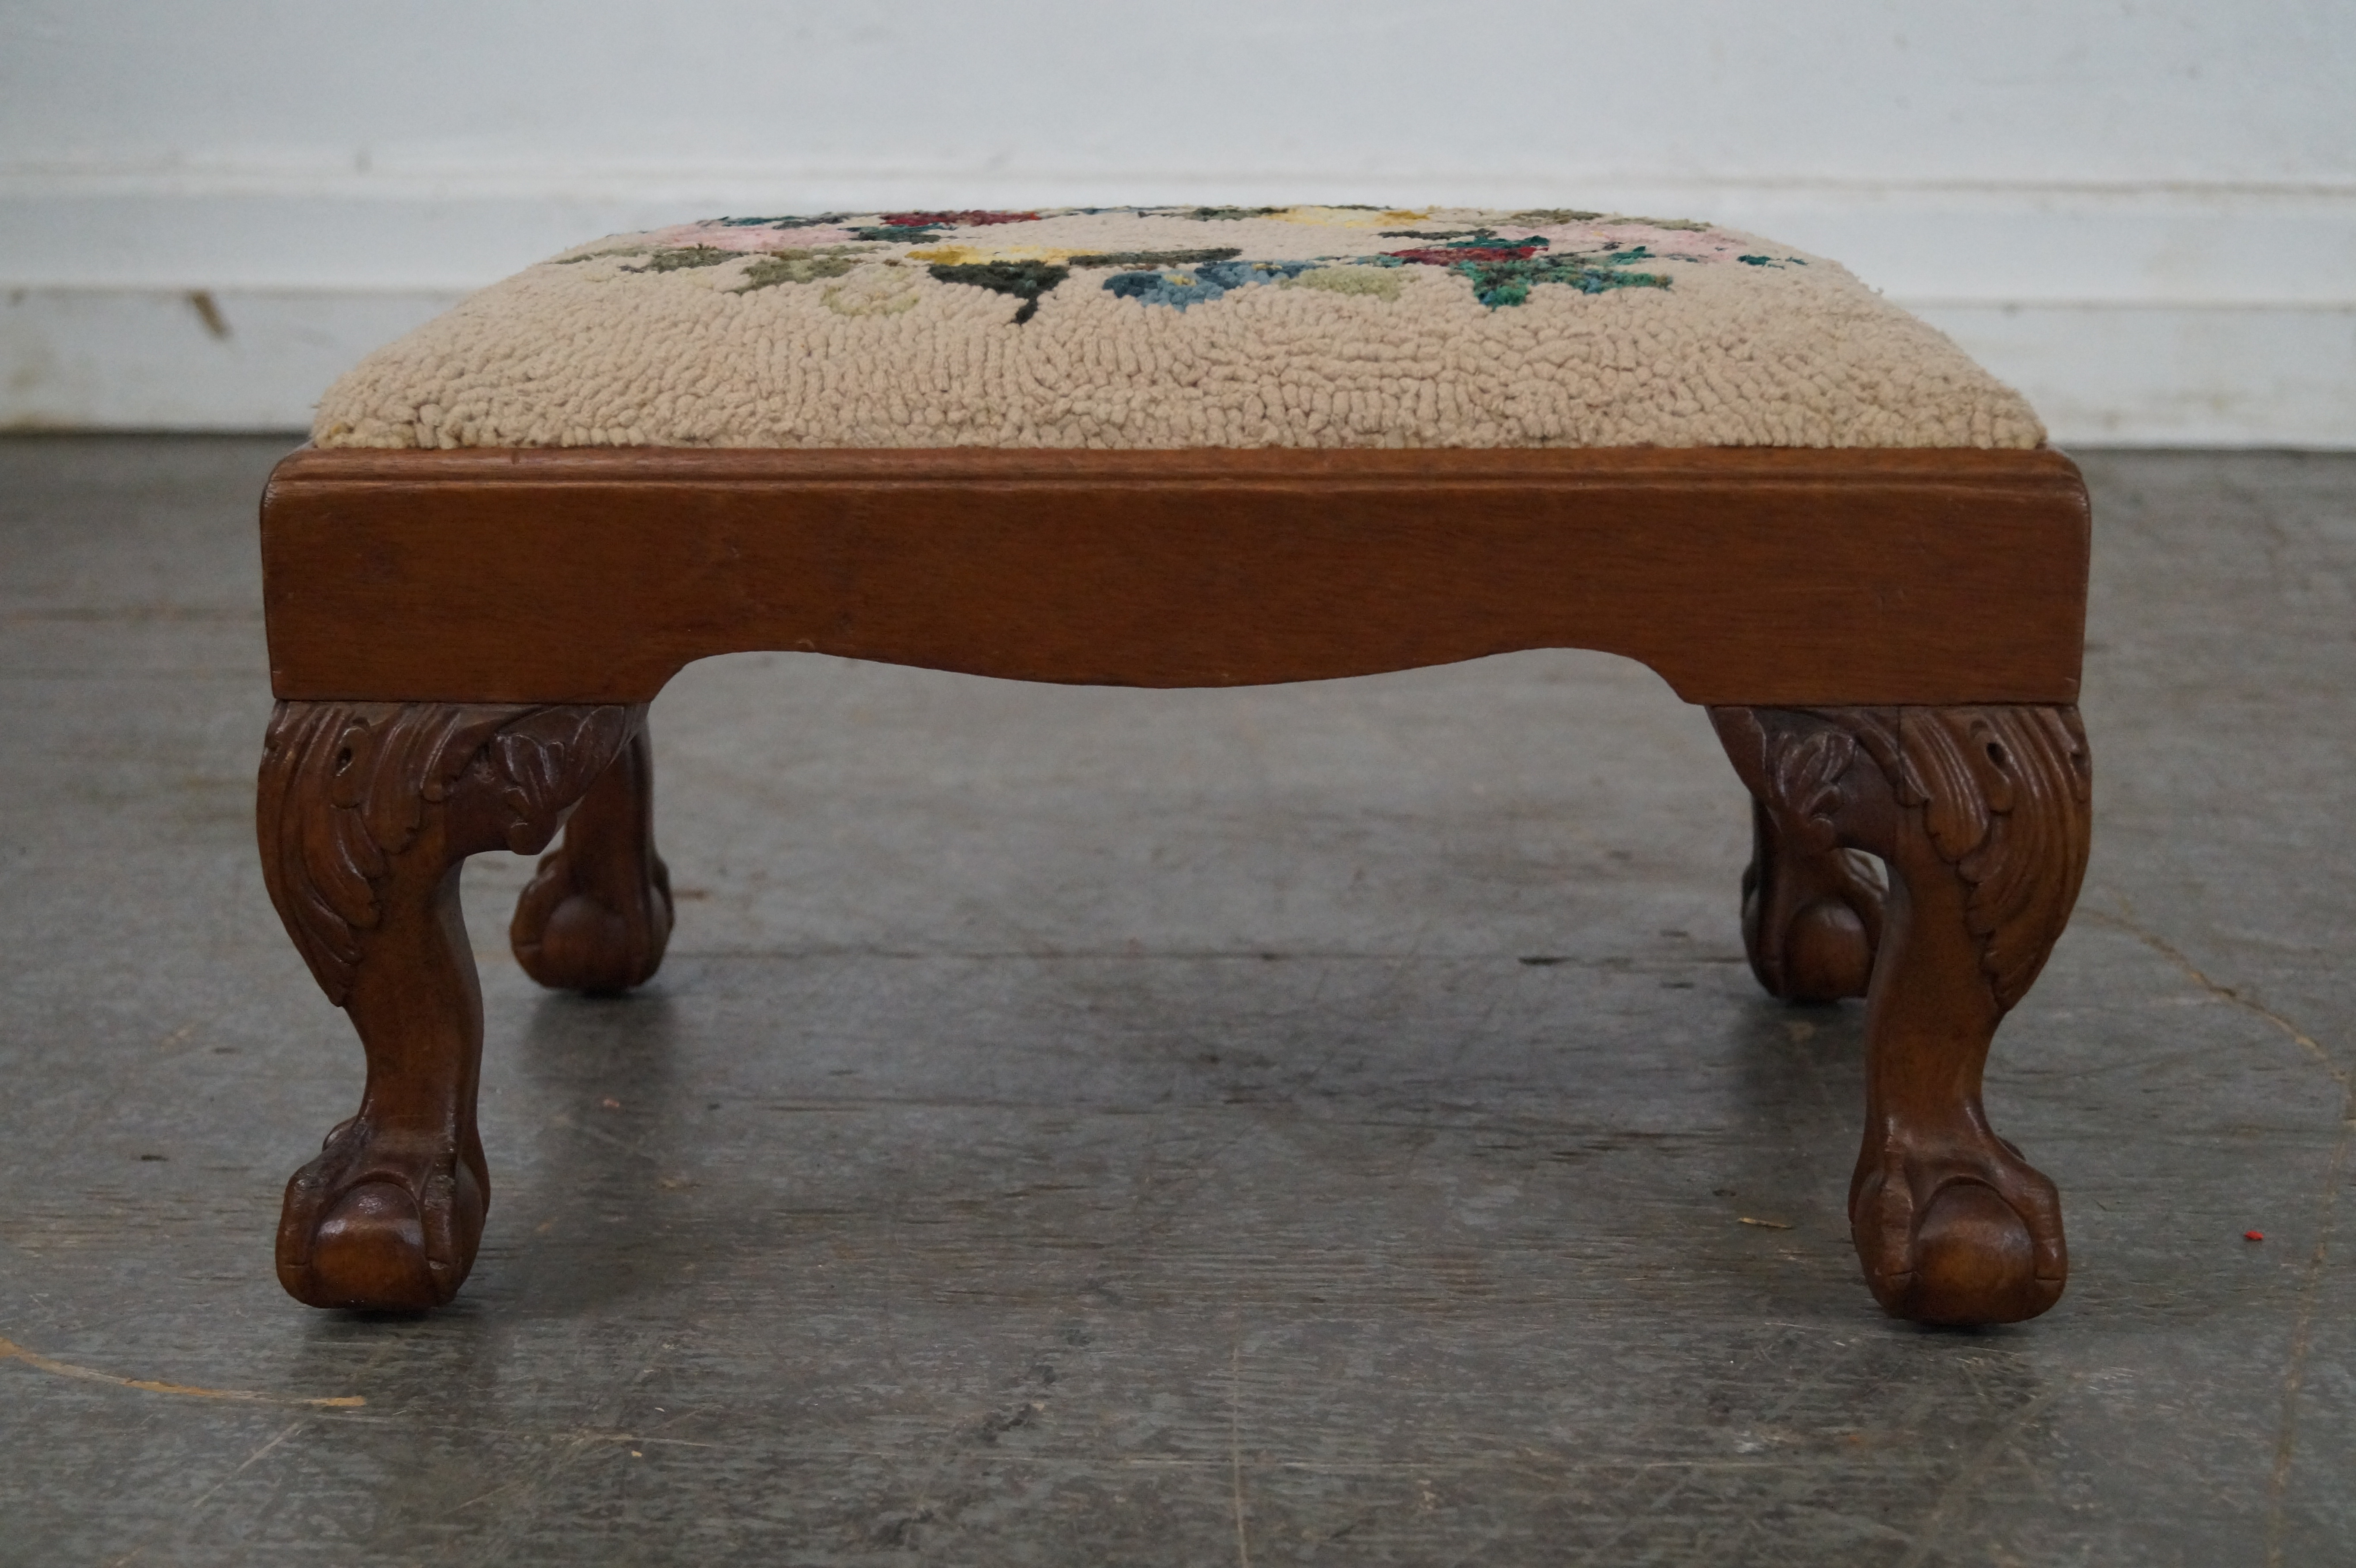 Antique Chippendale Style Mahogany Ball U0026 Claw Foot Needlepoint Footstool    Image 2 Of 10 Design